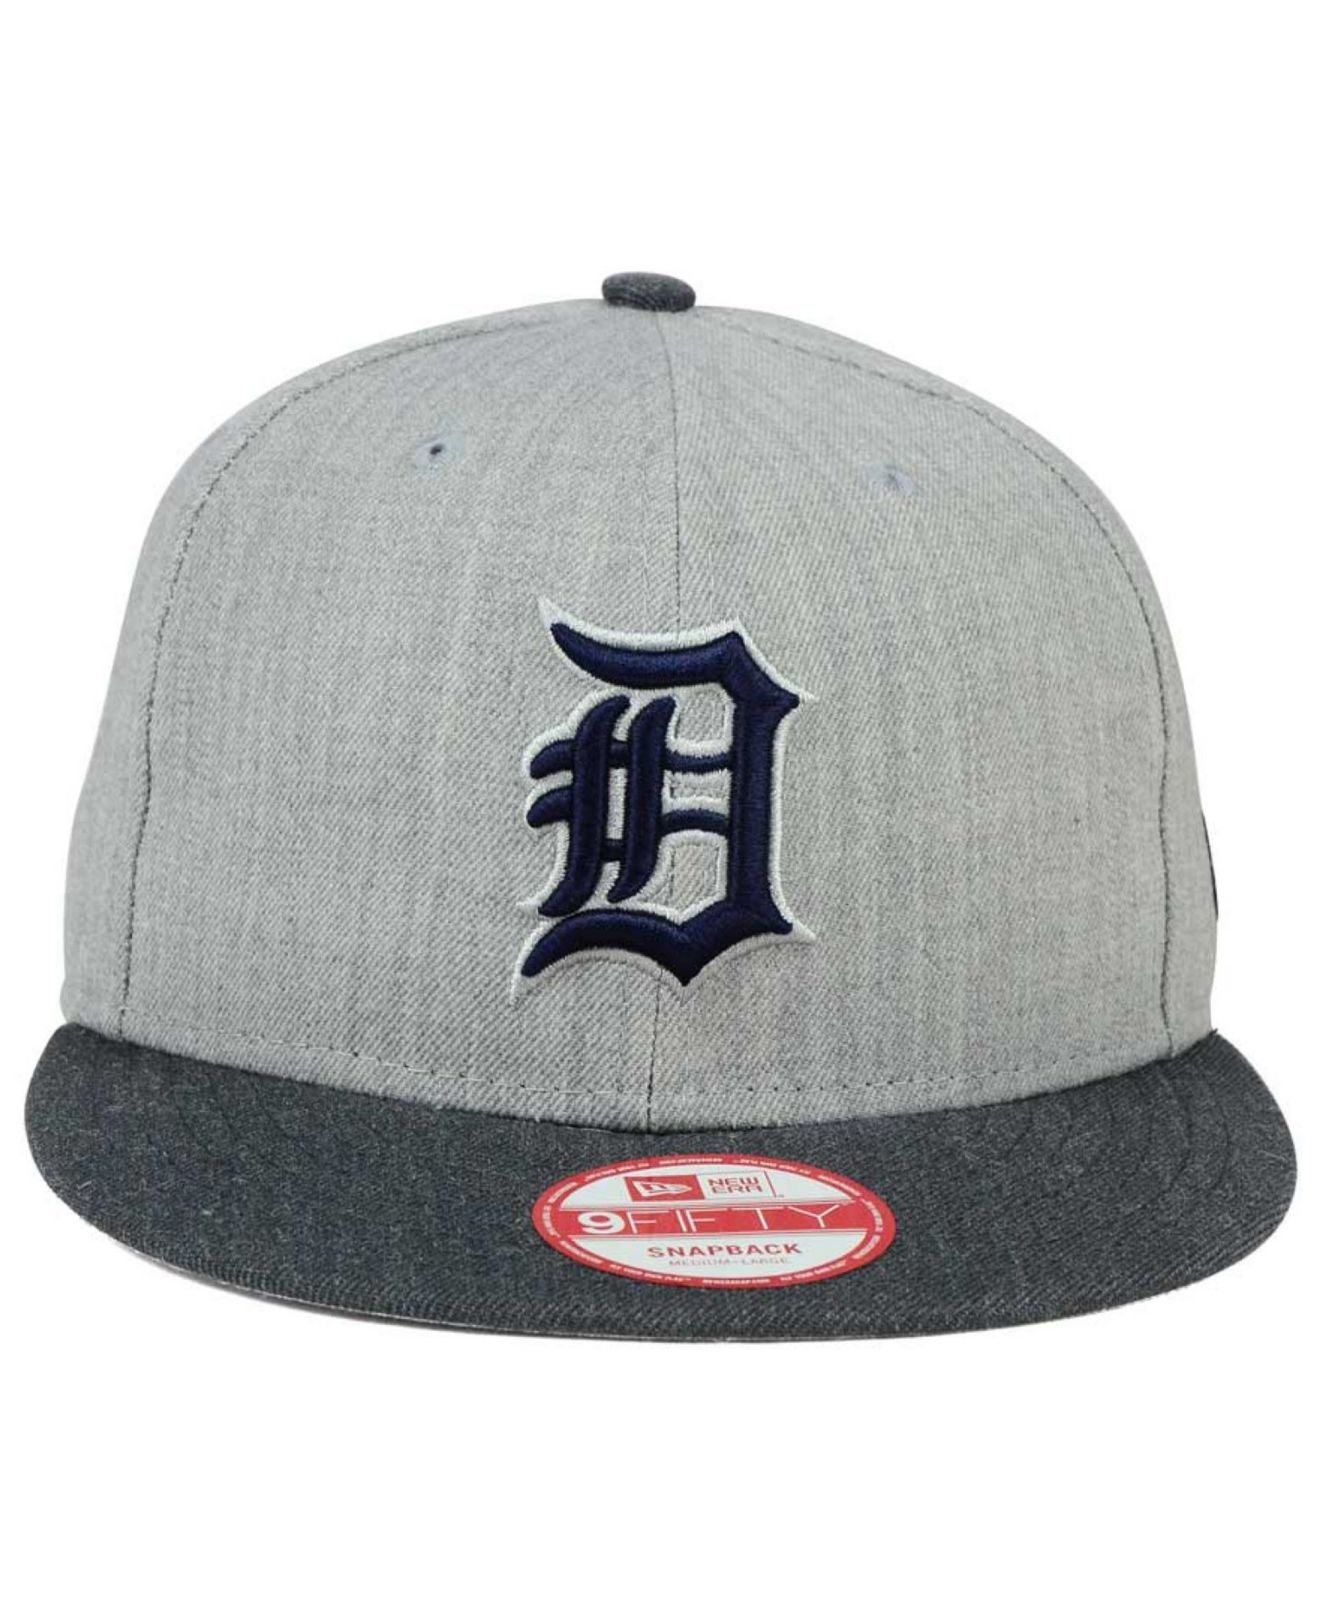 29a94ed42e8 Lyst - KTZ Detroit Tigers Heather Action 9fifty Snapback Cap in Gray ...